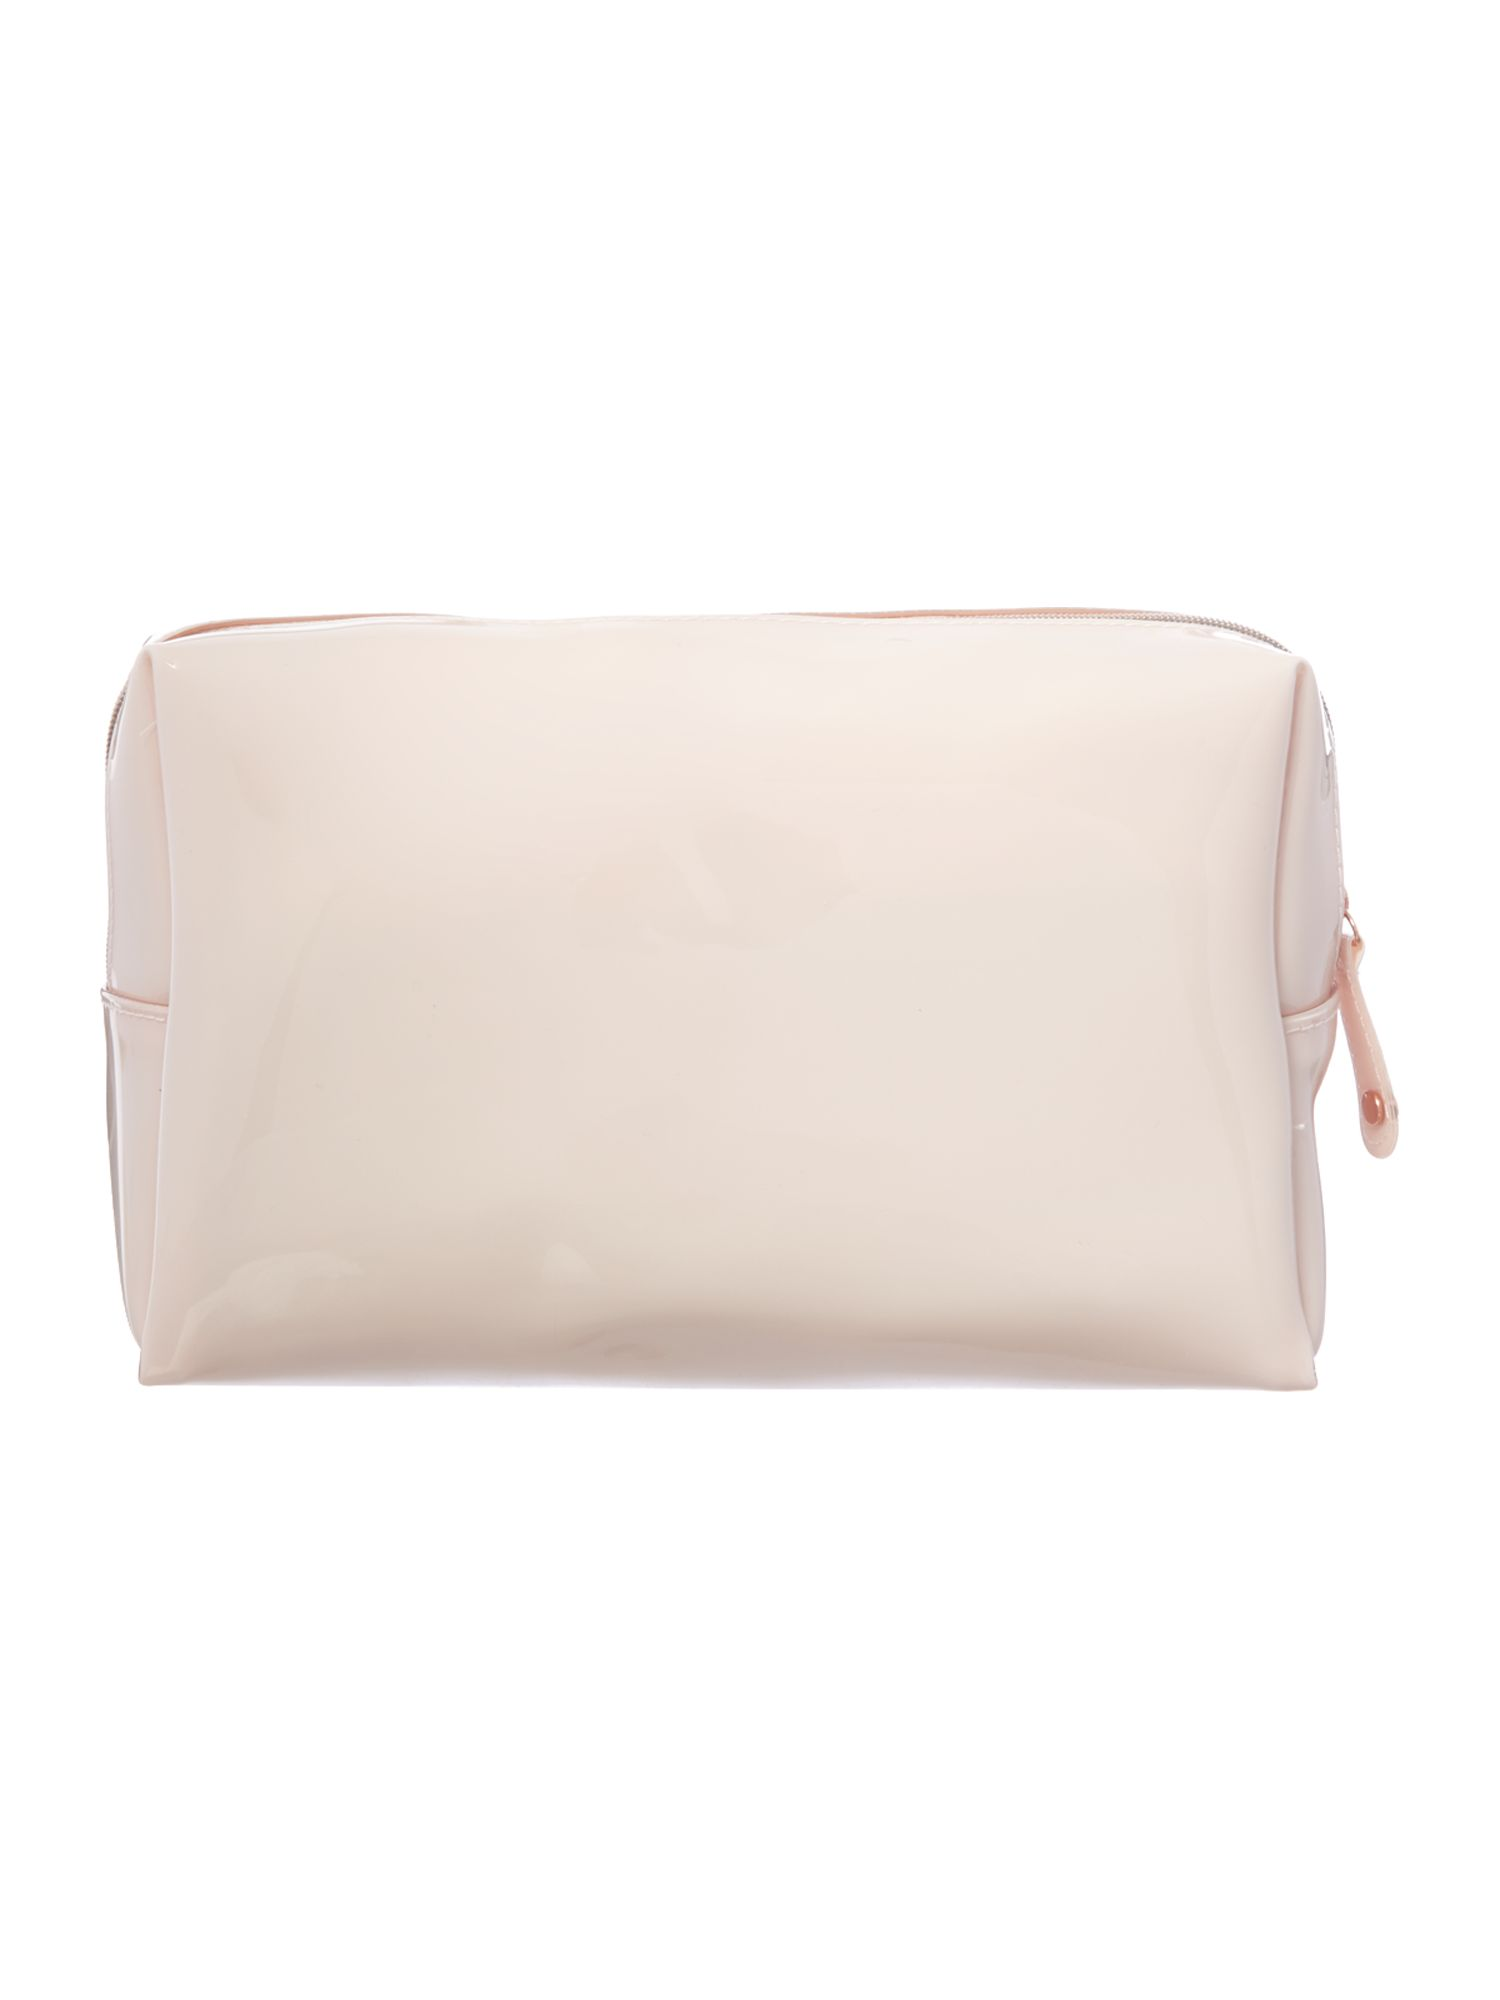 Large nude cosmetics bag